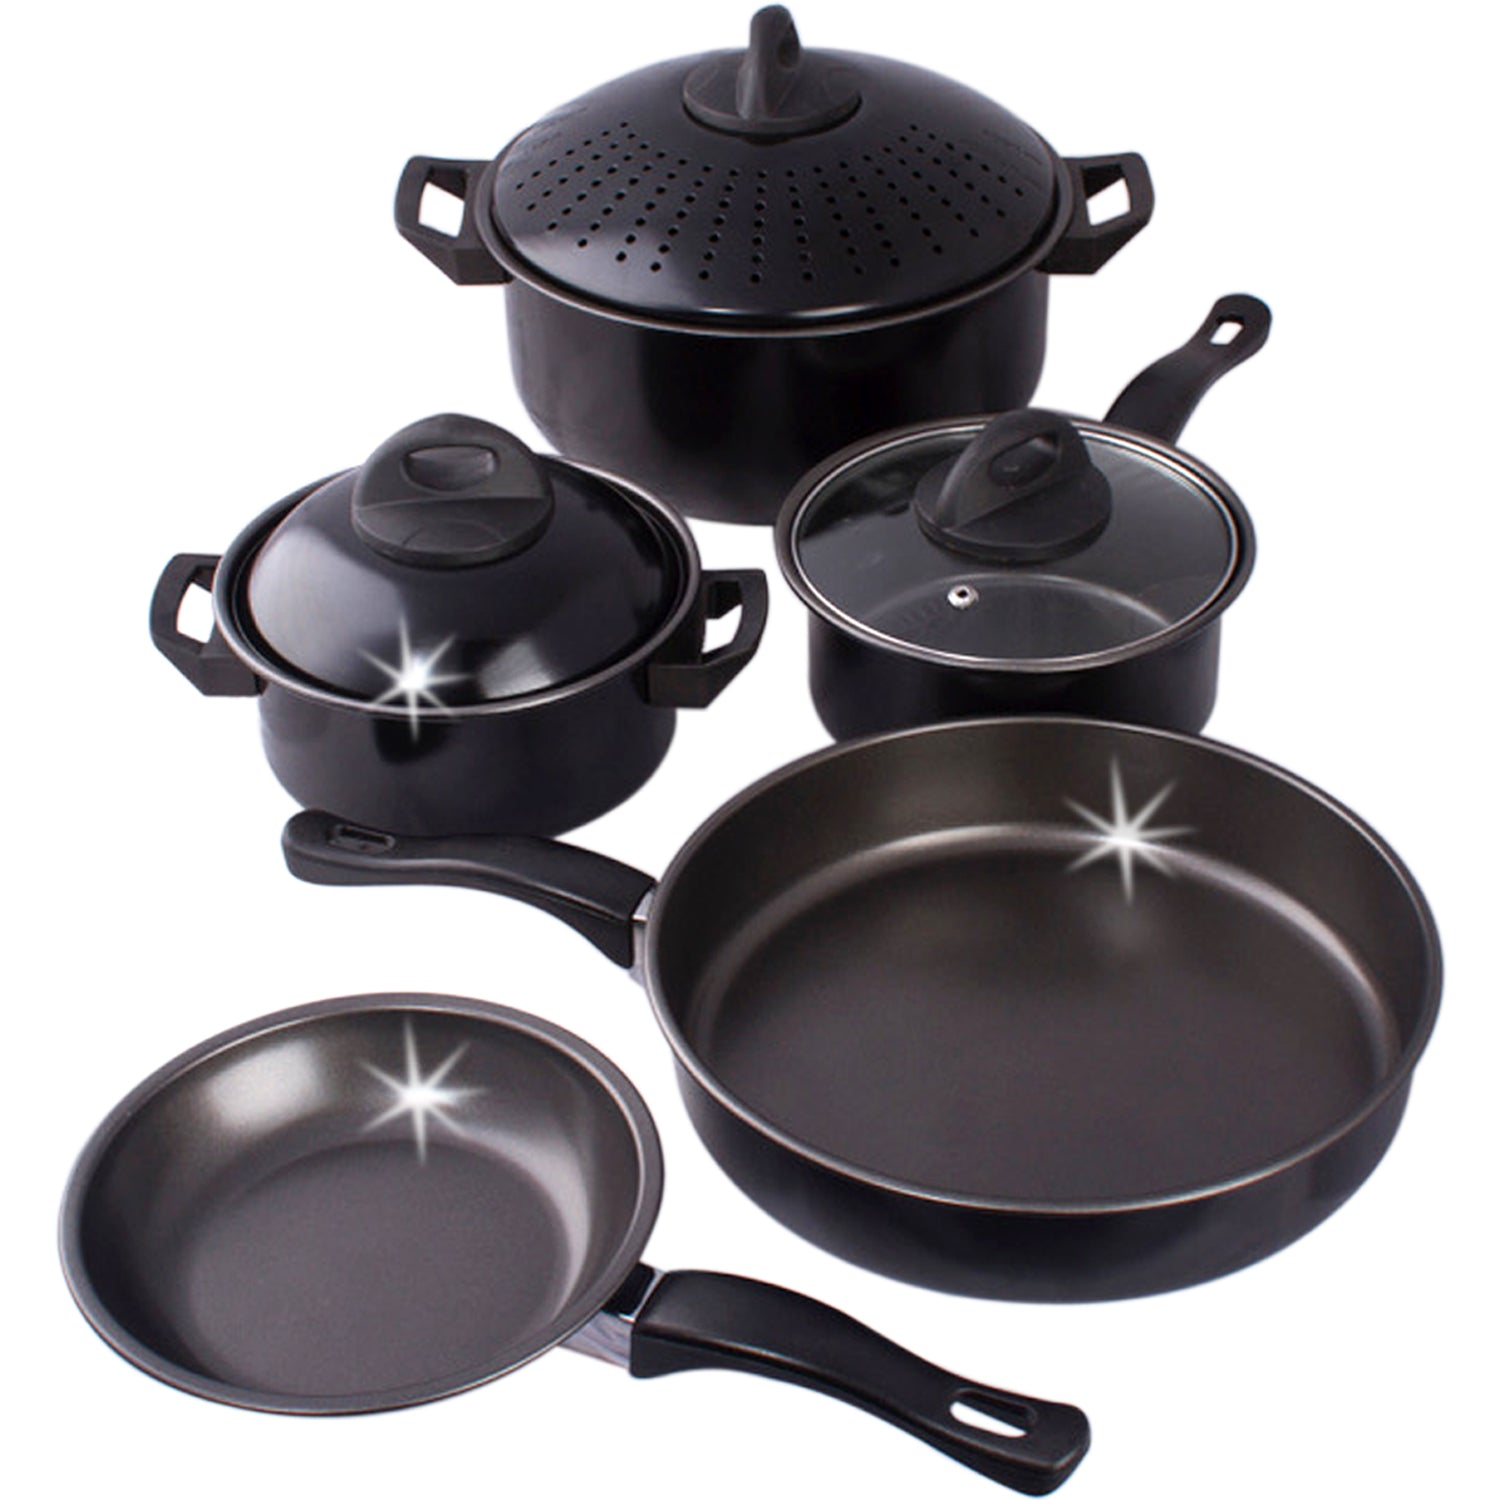 Cookware Set Kitchen Pasta Pot W Strainer Lid Sauce Frying Pan 8 Pcs Set Black